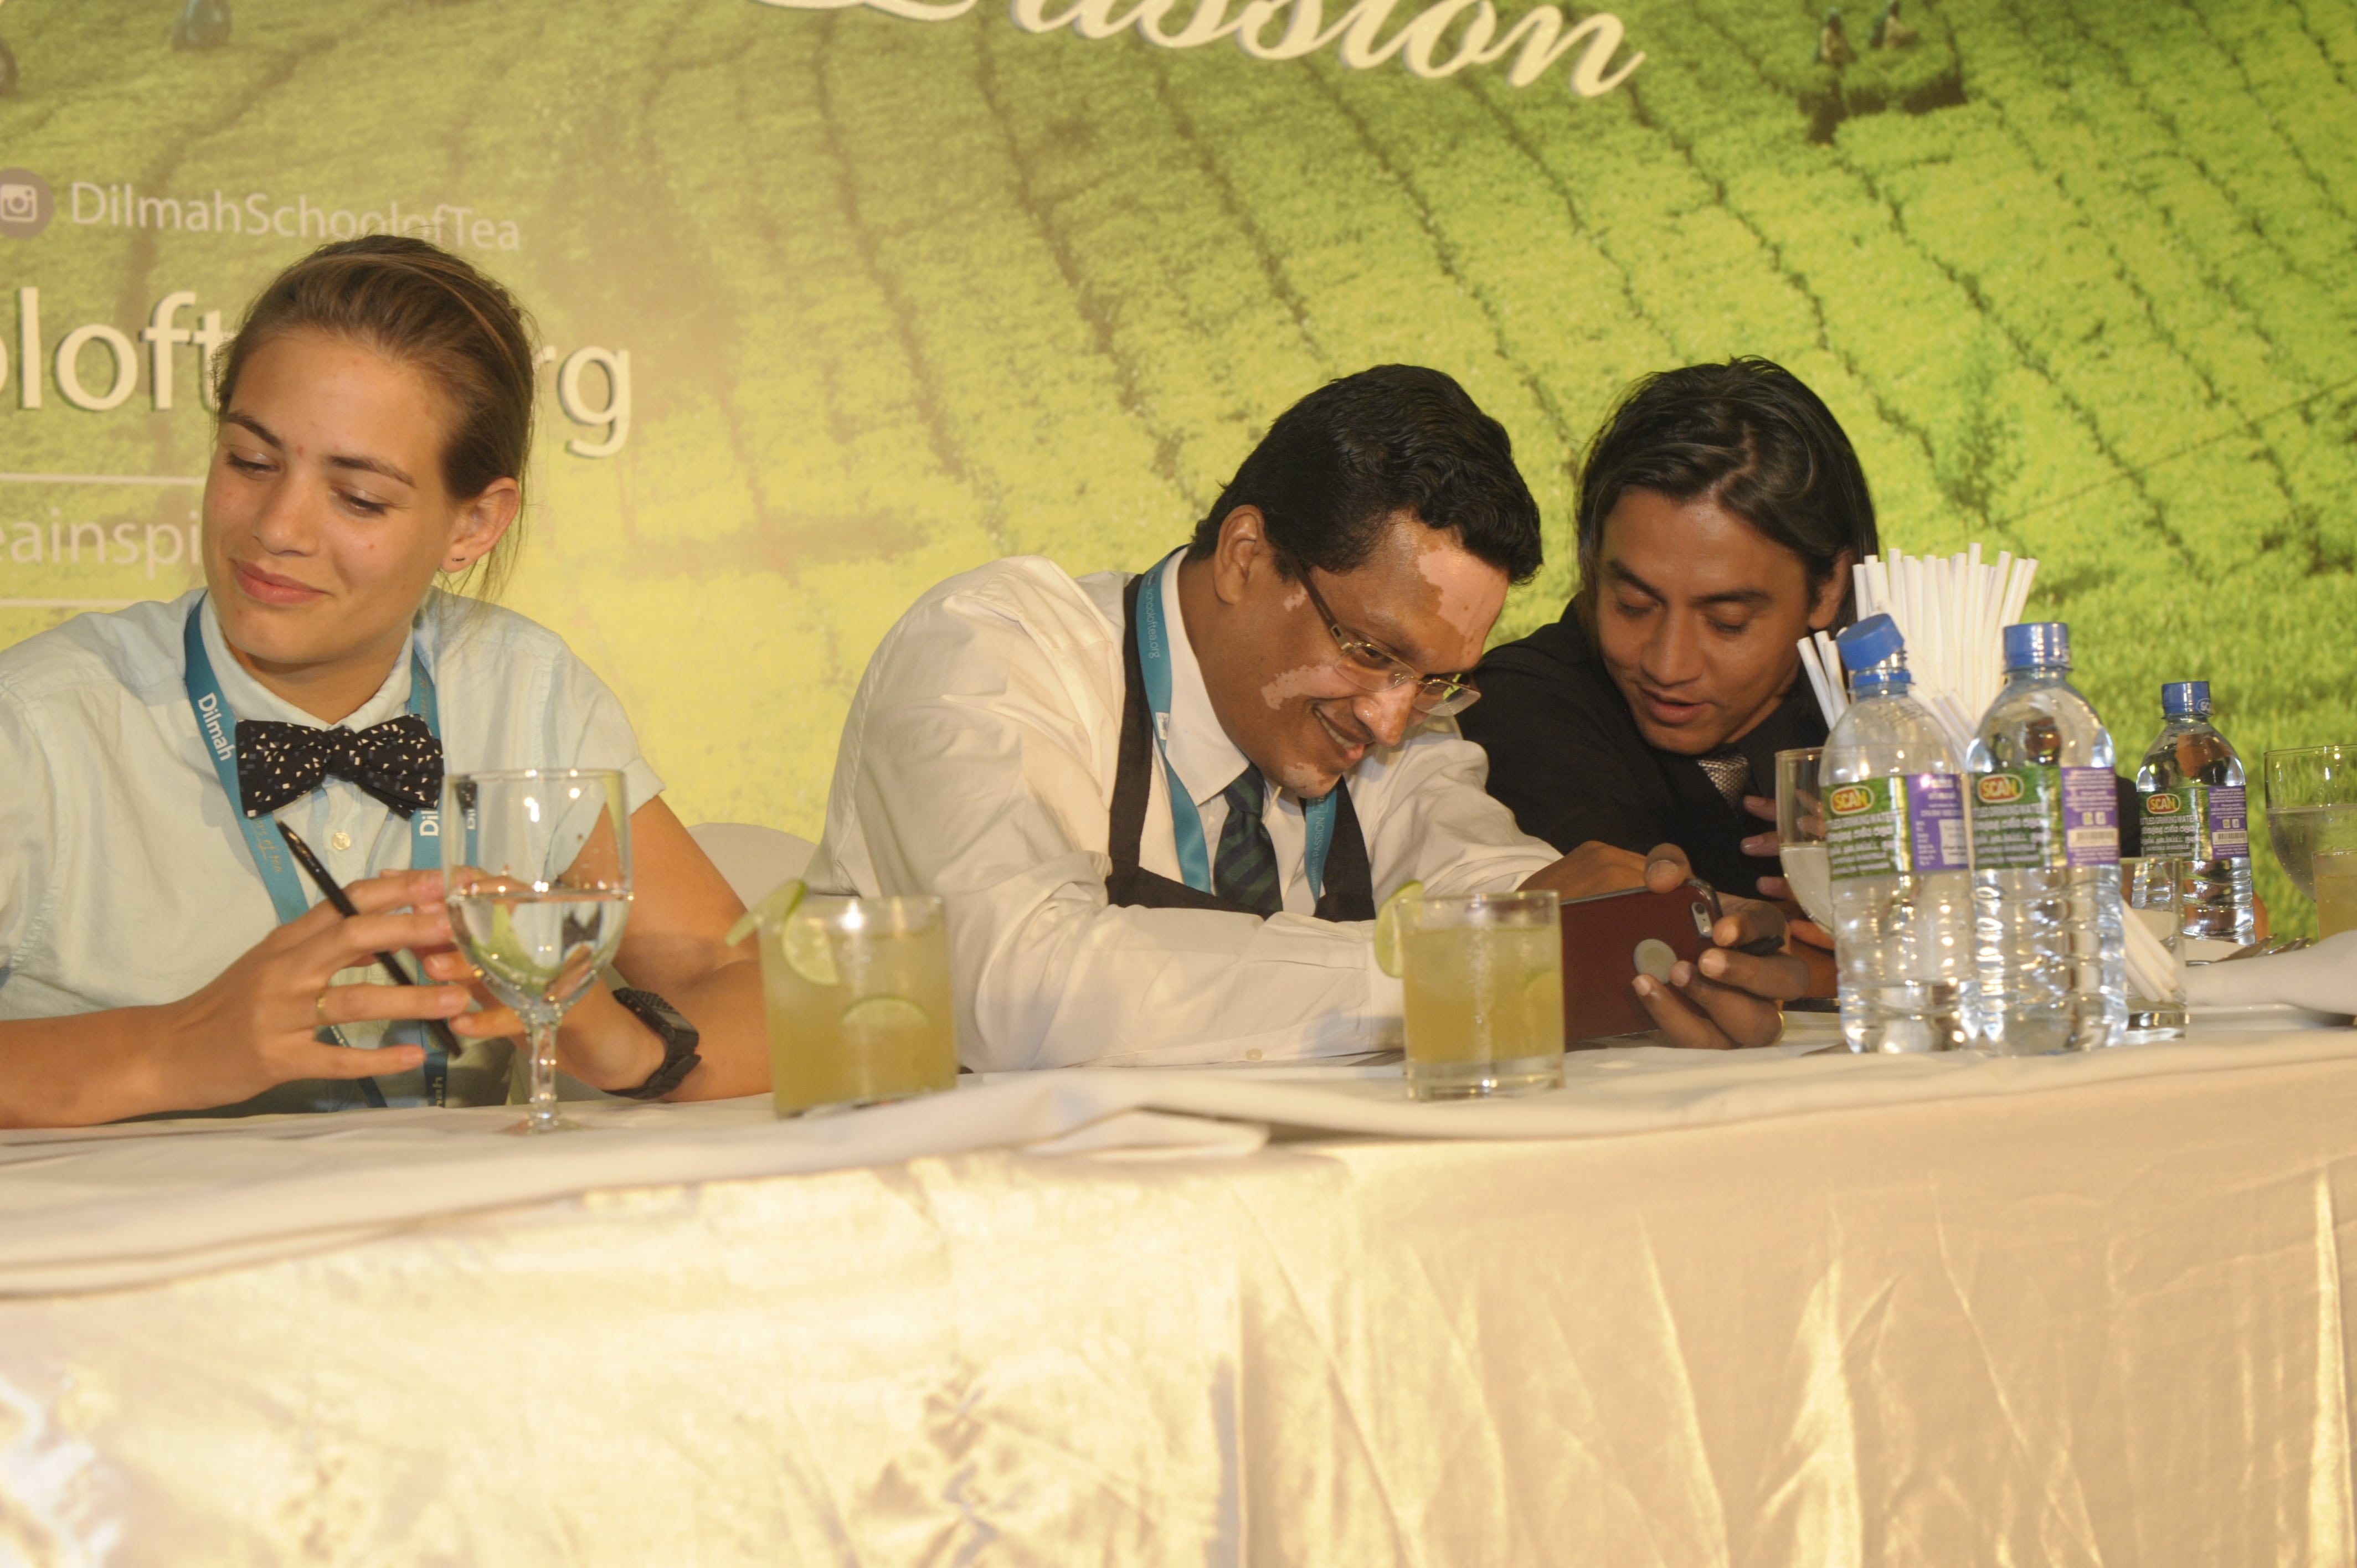 Tess, Dilhan & Robert Judging the 'Tea for every mood' competition